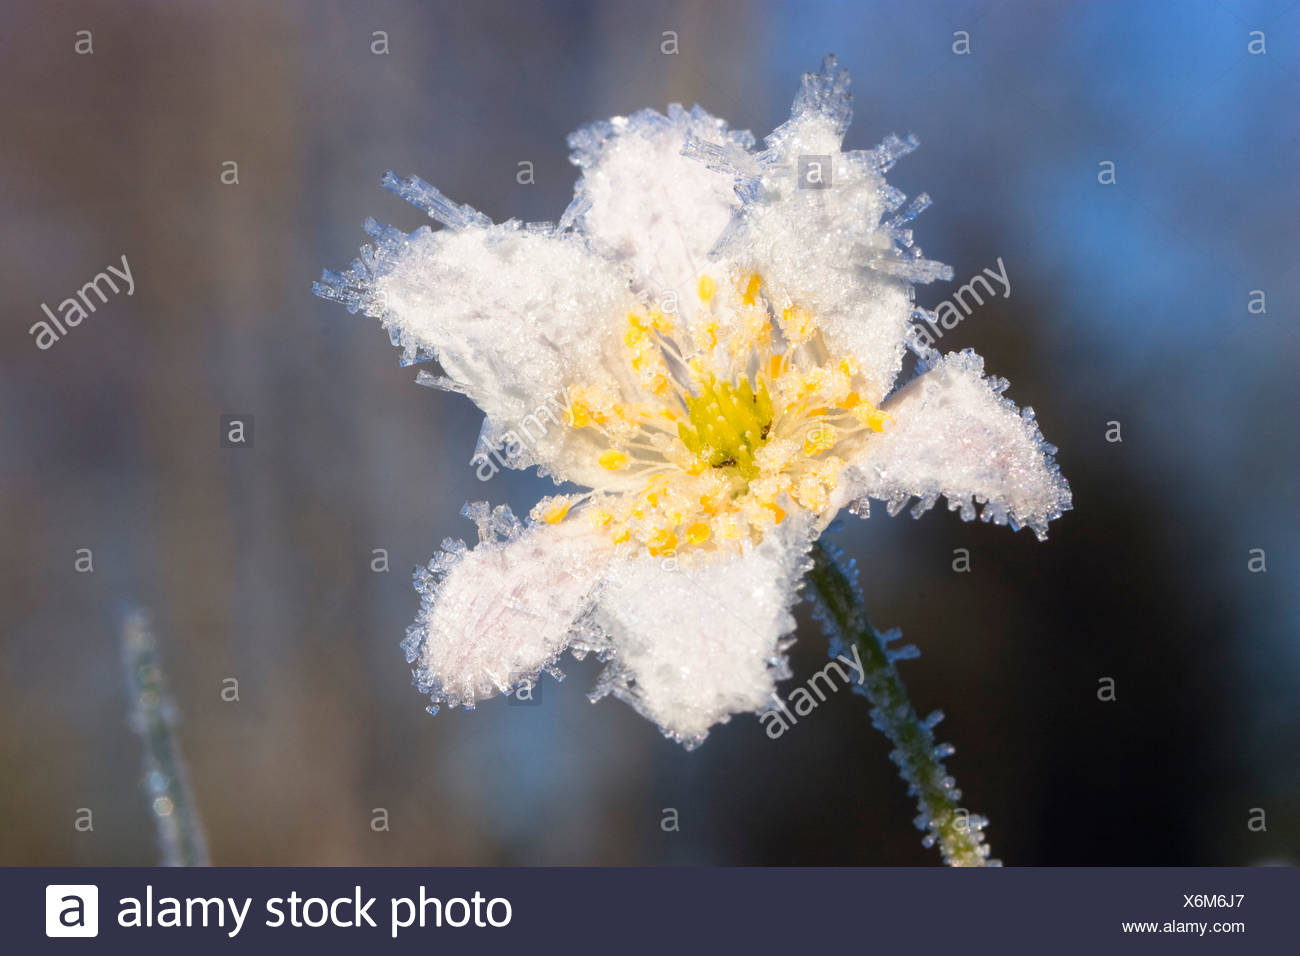 Wood Anemone with whitefrost, Anemone nemorosa Stock Photo